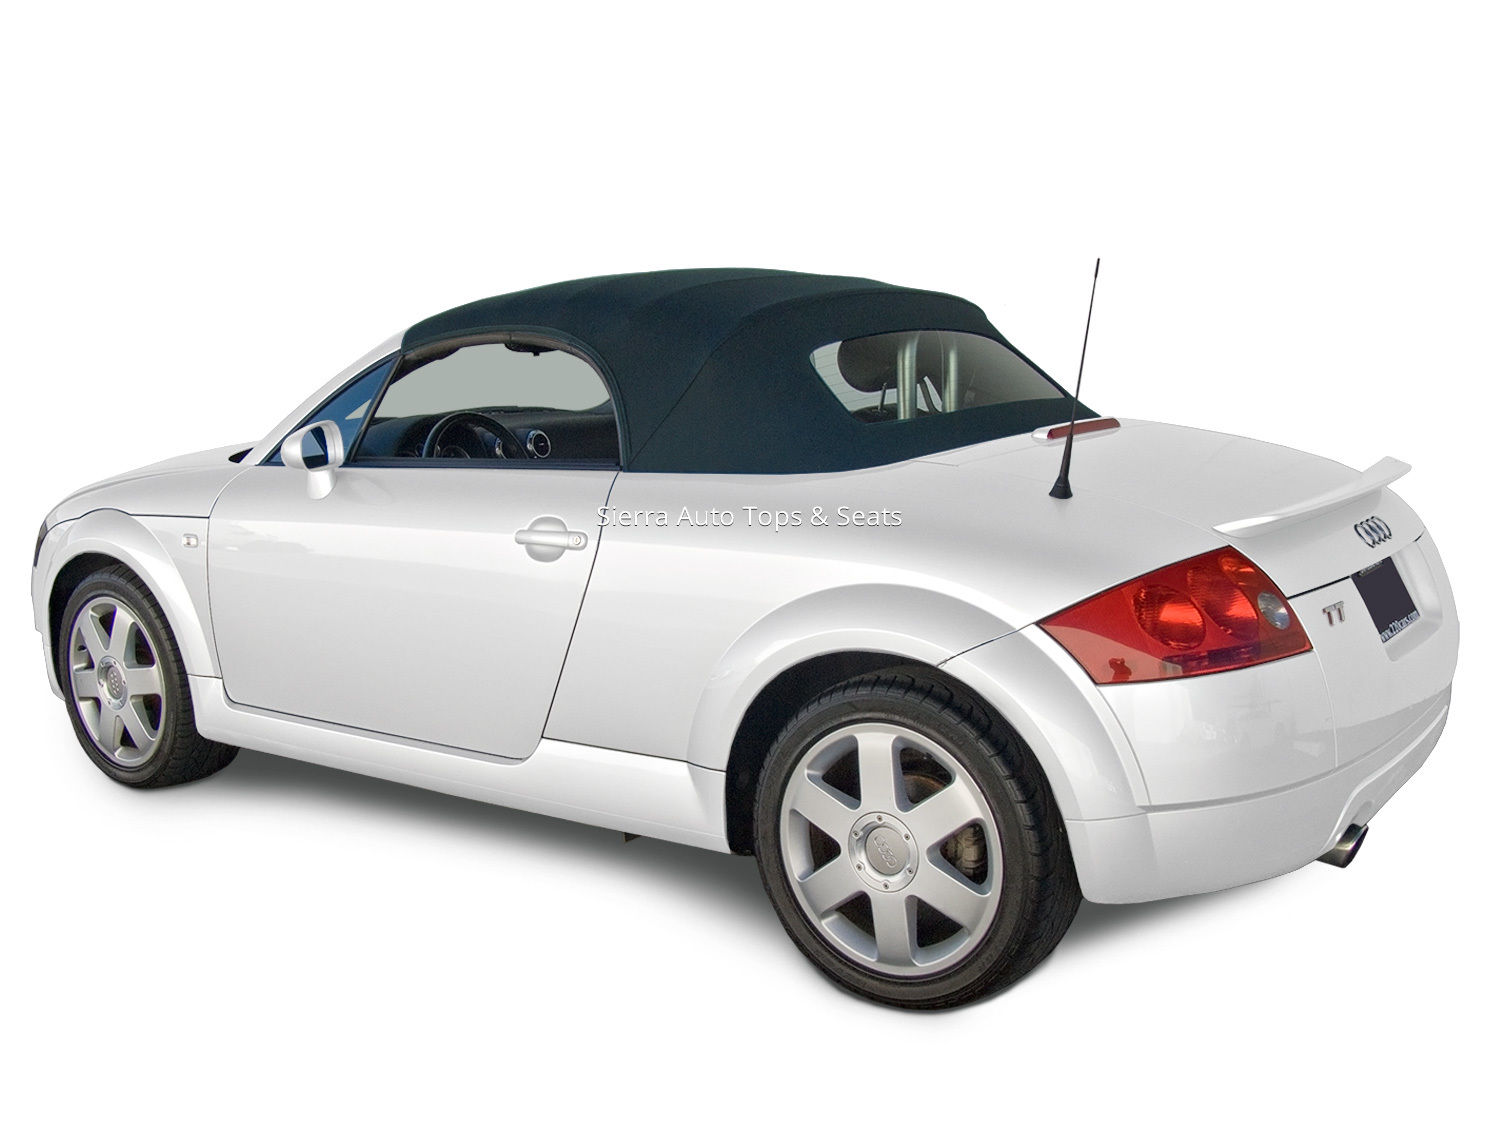 幌 アウディTTコンバーチブルトップ(青色) Audi TT Convertible Top in Blue Stayfast Cloth with Glass Window